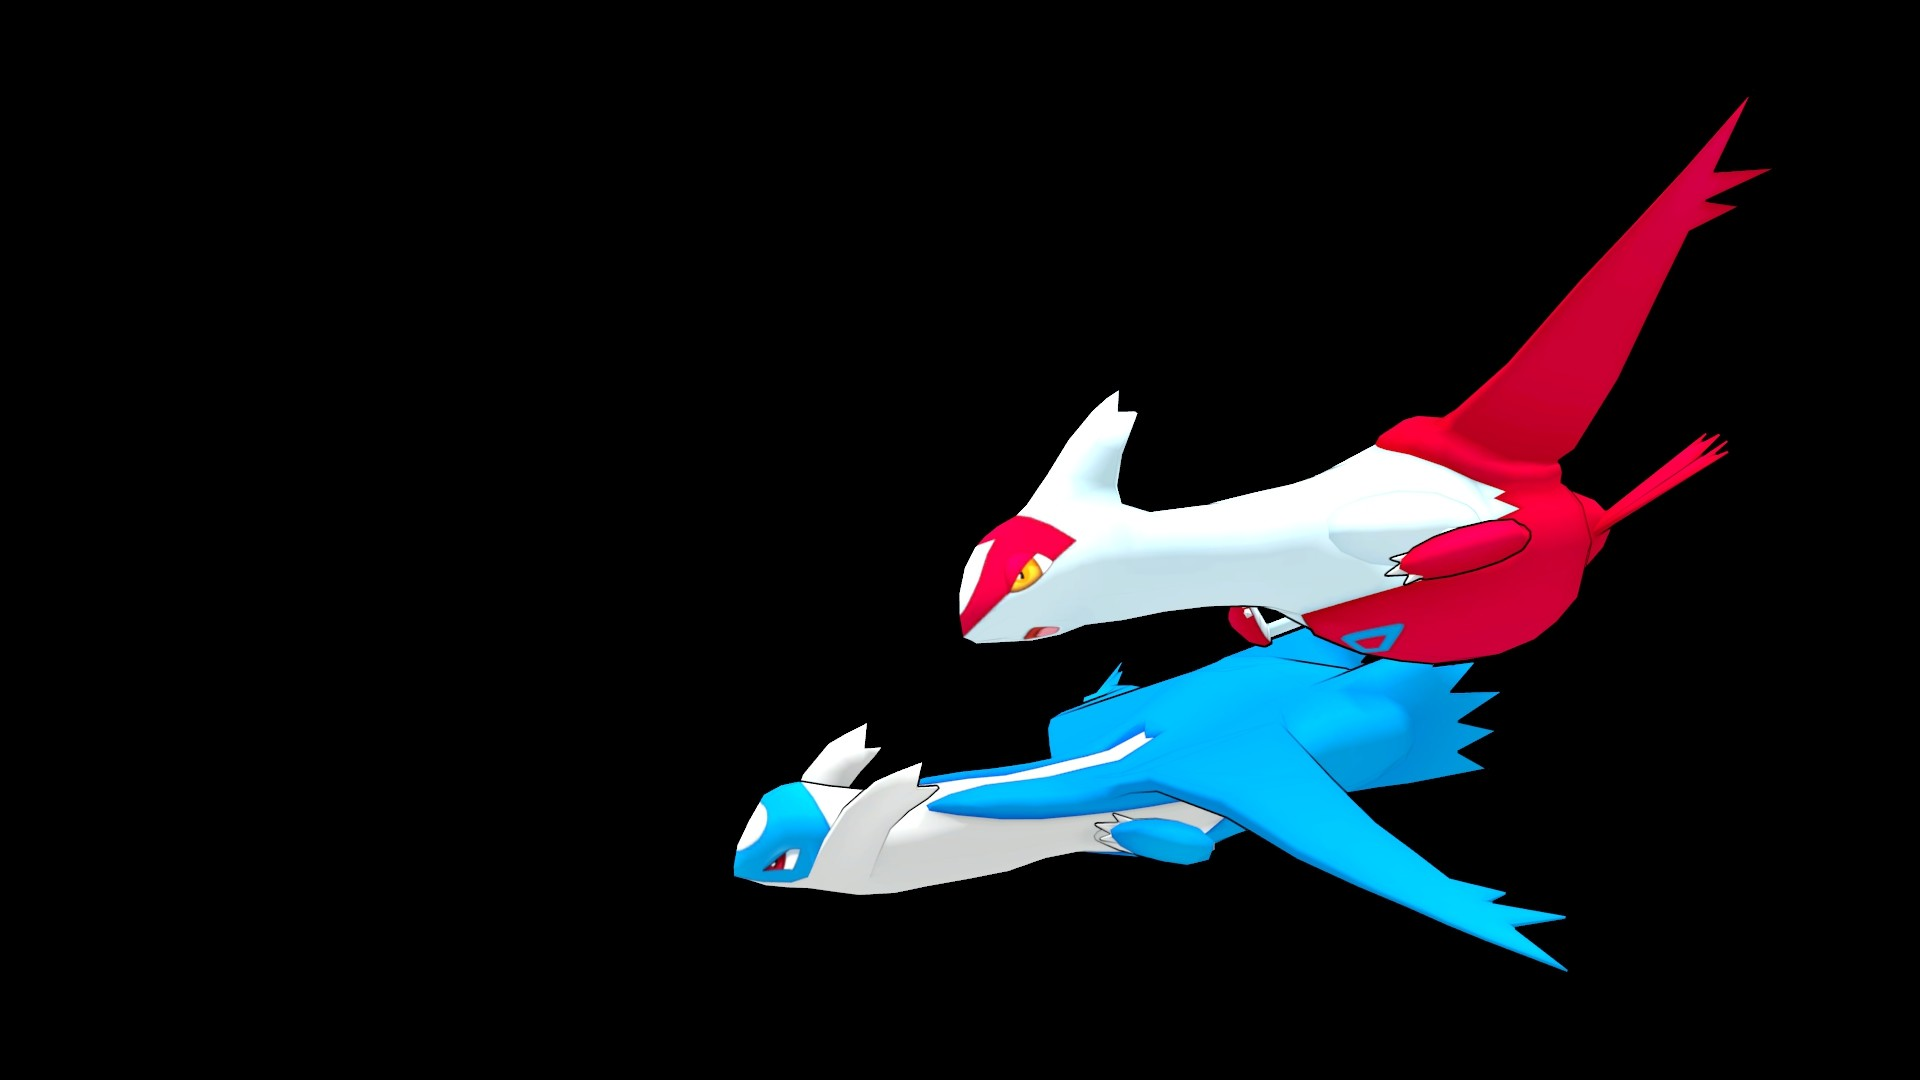 HD image of the Latios 3D Model available at ROEStudios.co.uk